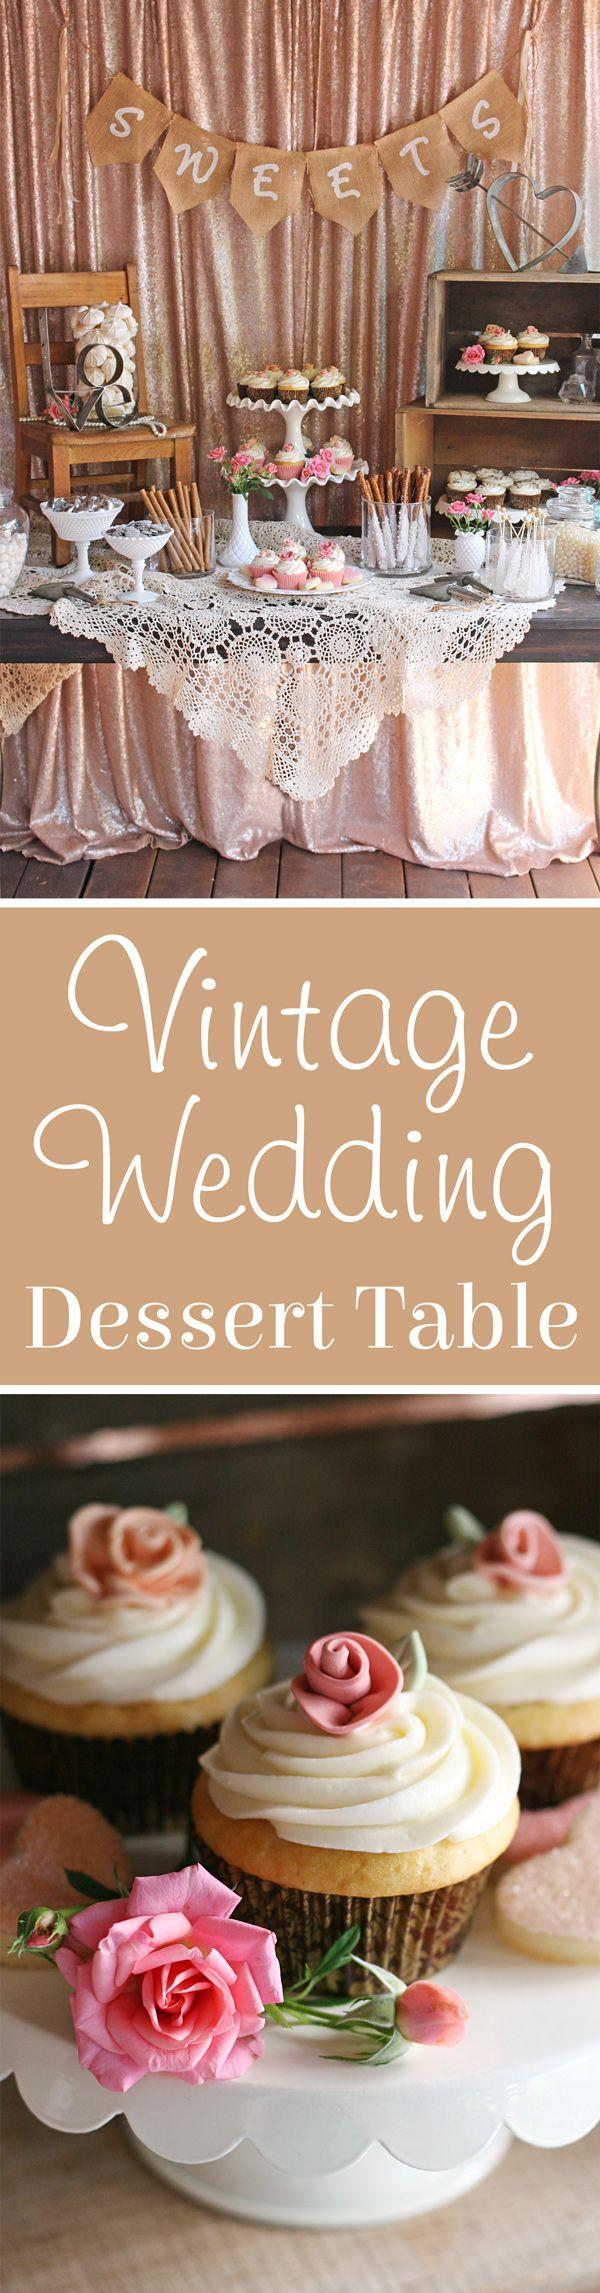 Hochzeit - Vintage Wedding Dessert Table